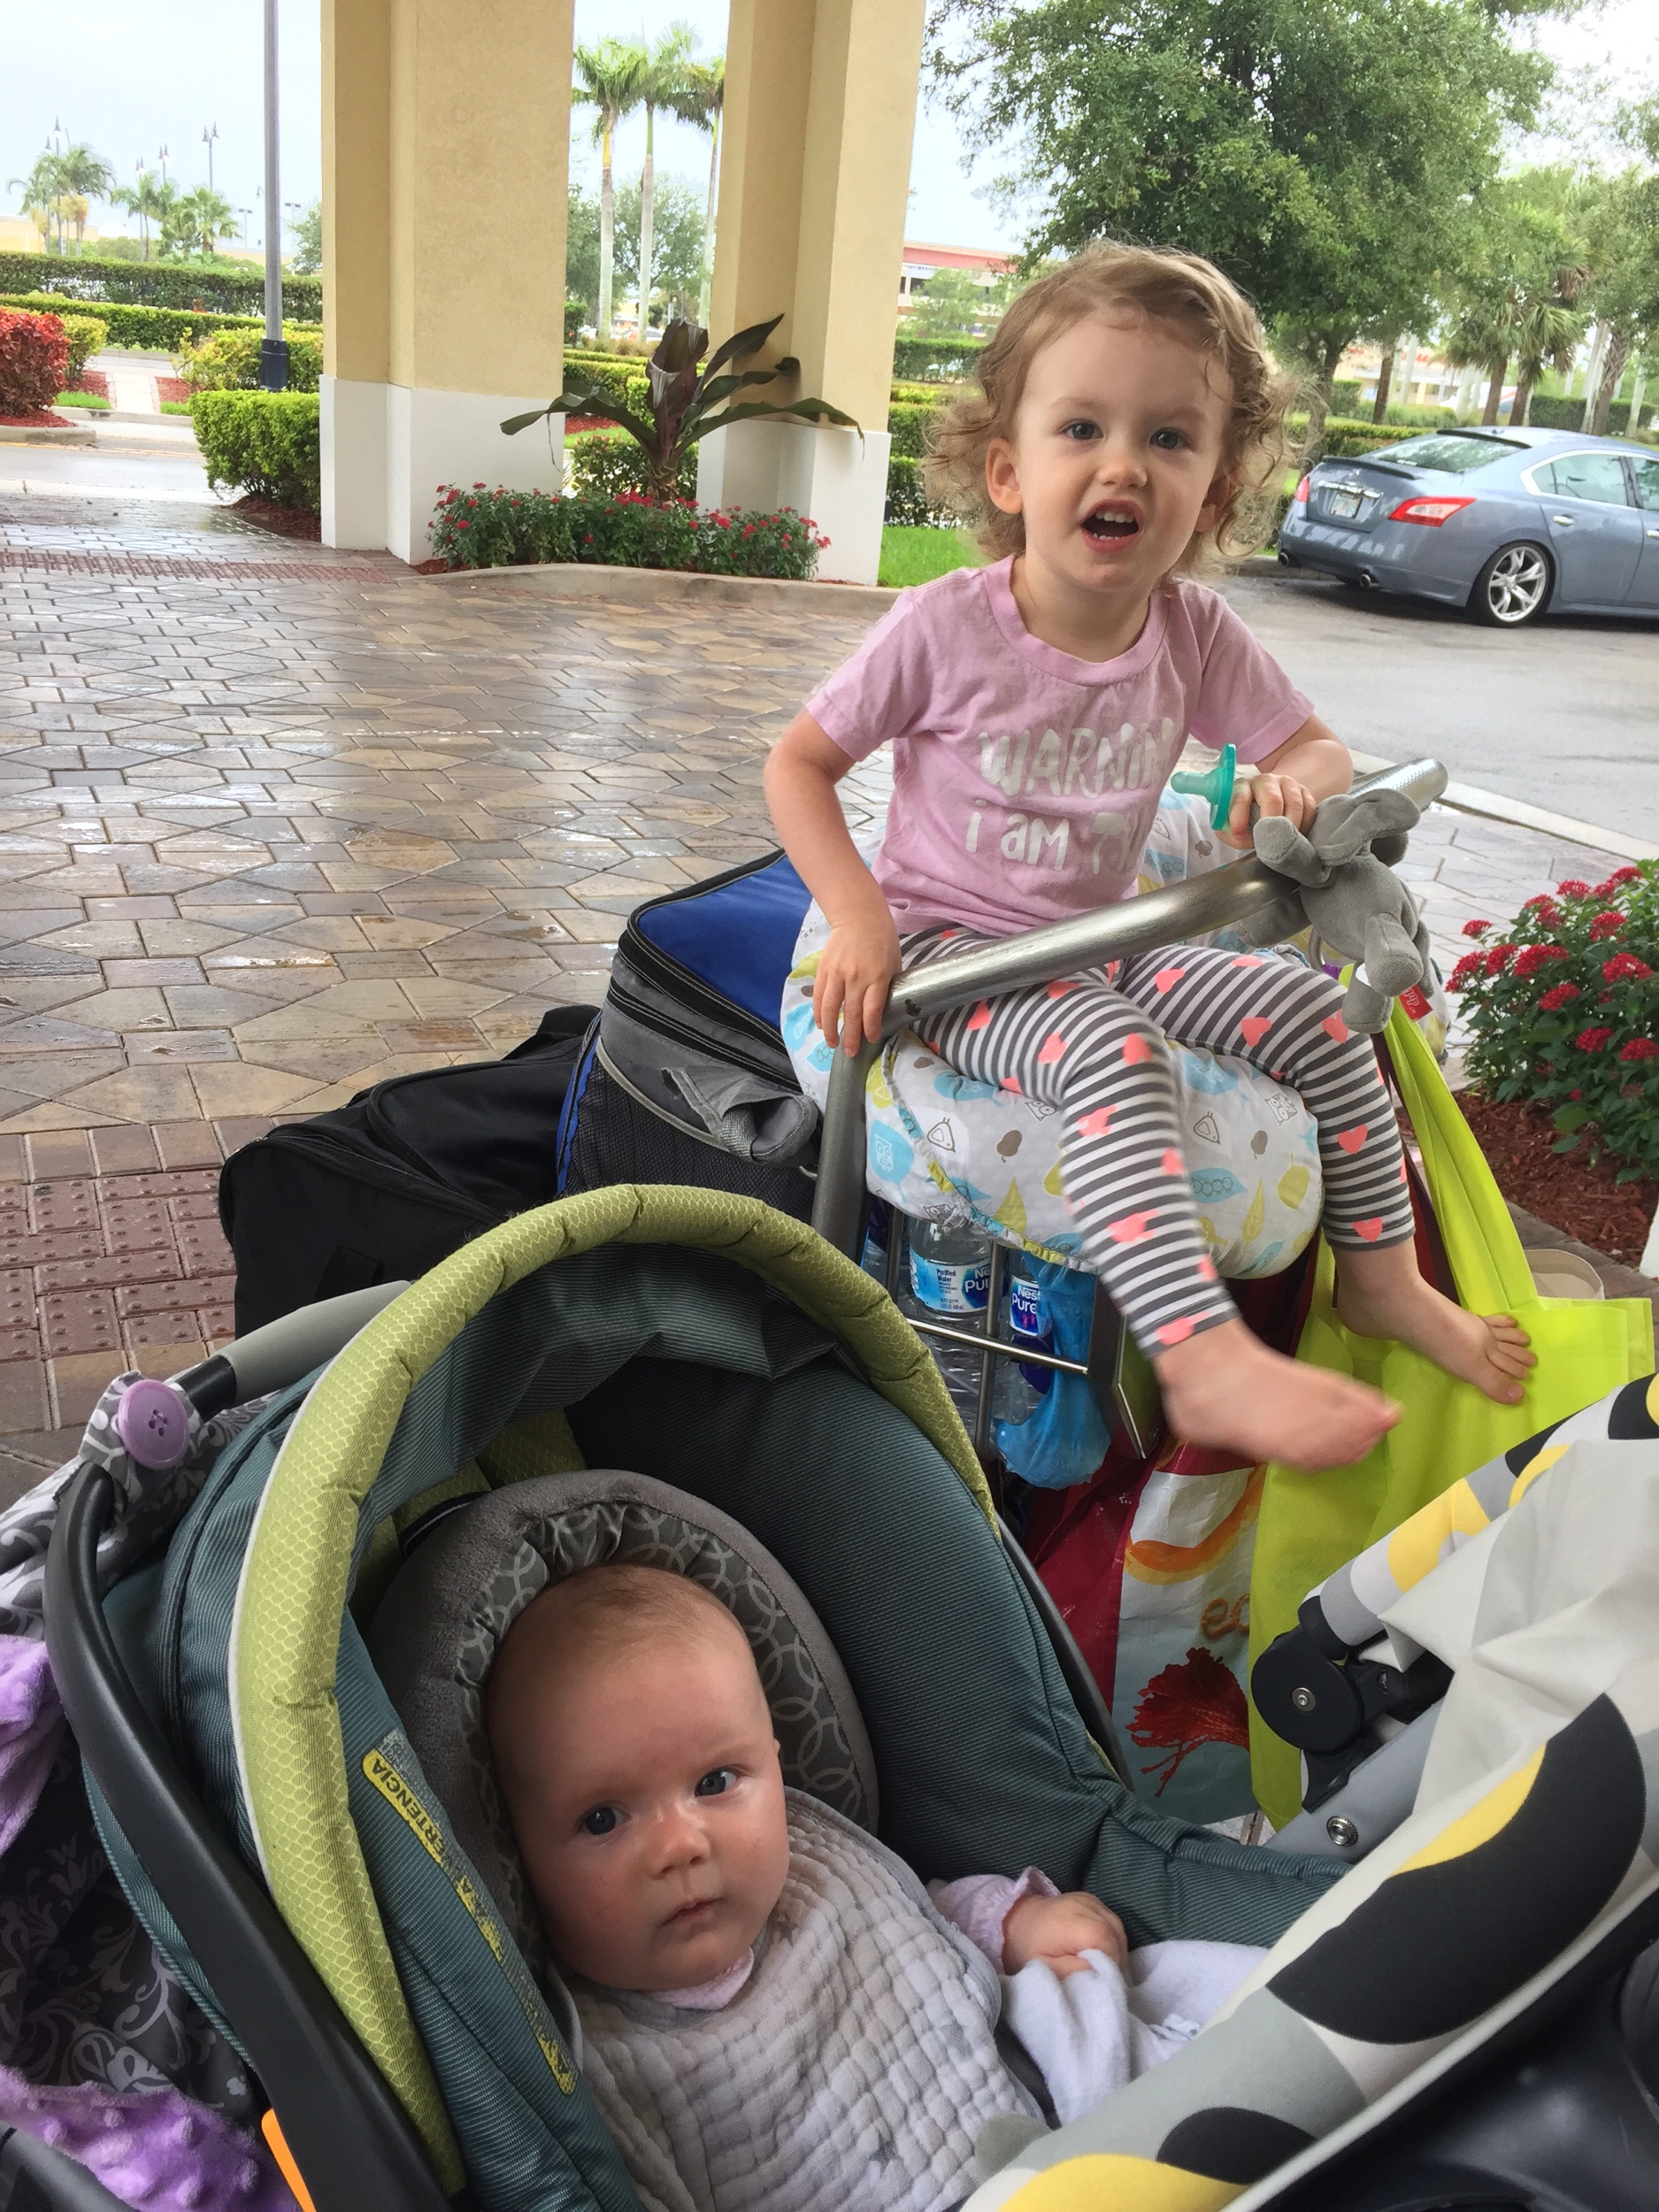 Leaving a hotel in Boynton Beach, FL with ALL of our baggage. My CRV was jam packed. We have gotten much more efficient!